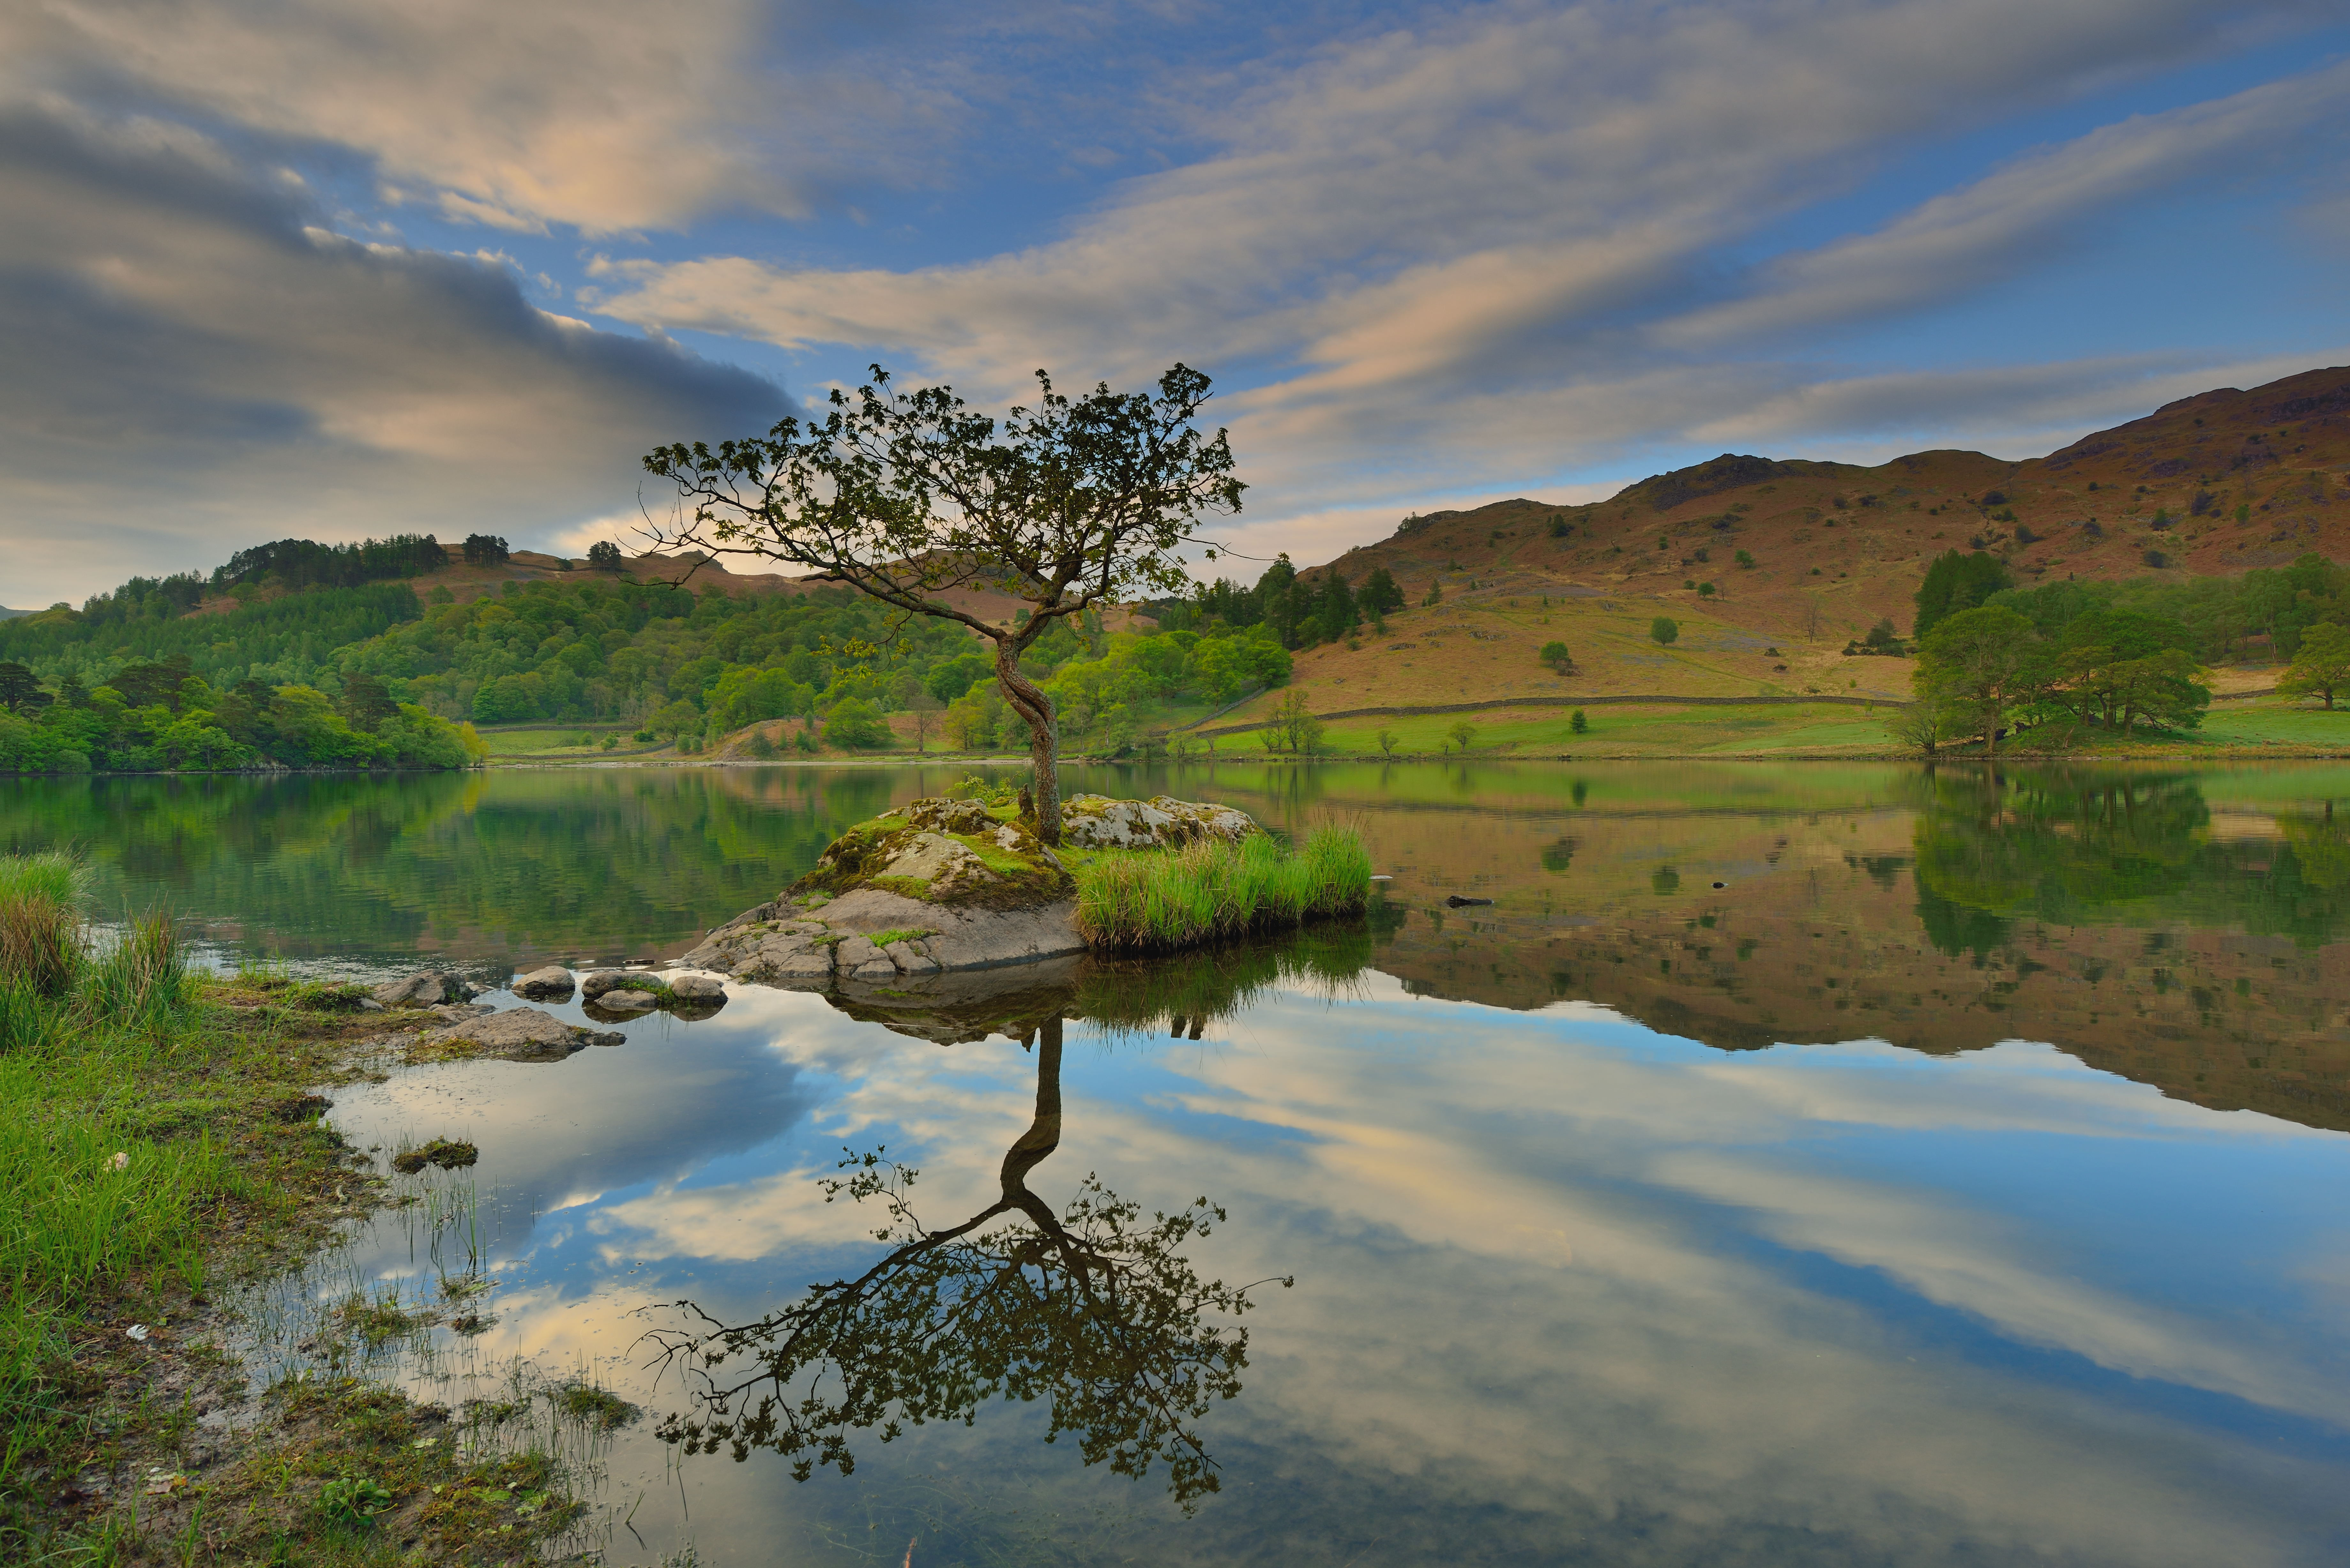 The Rydal tree